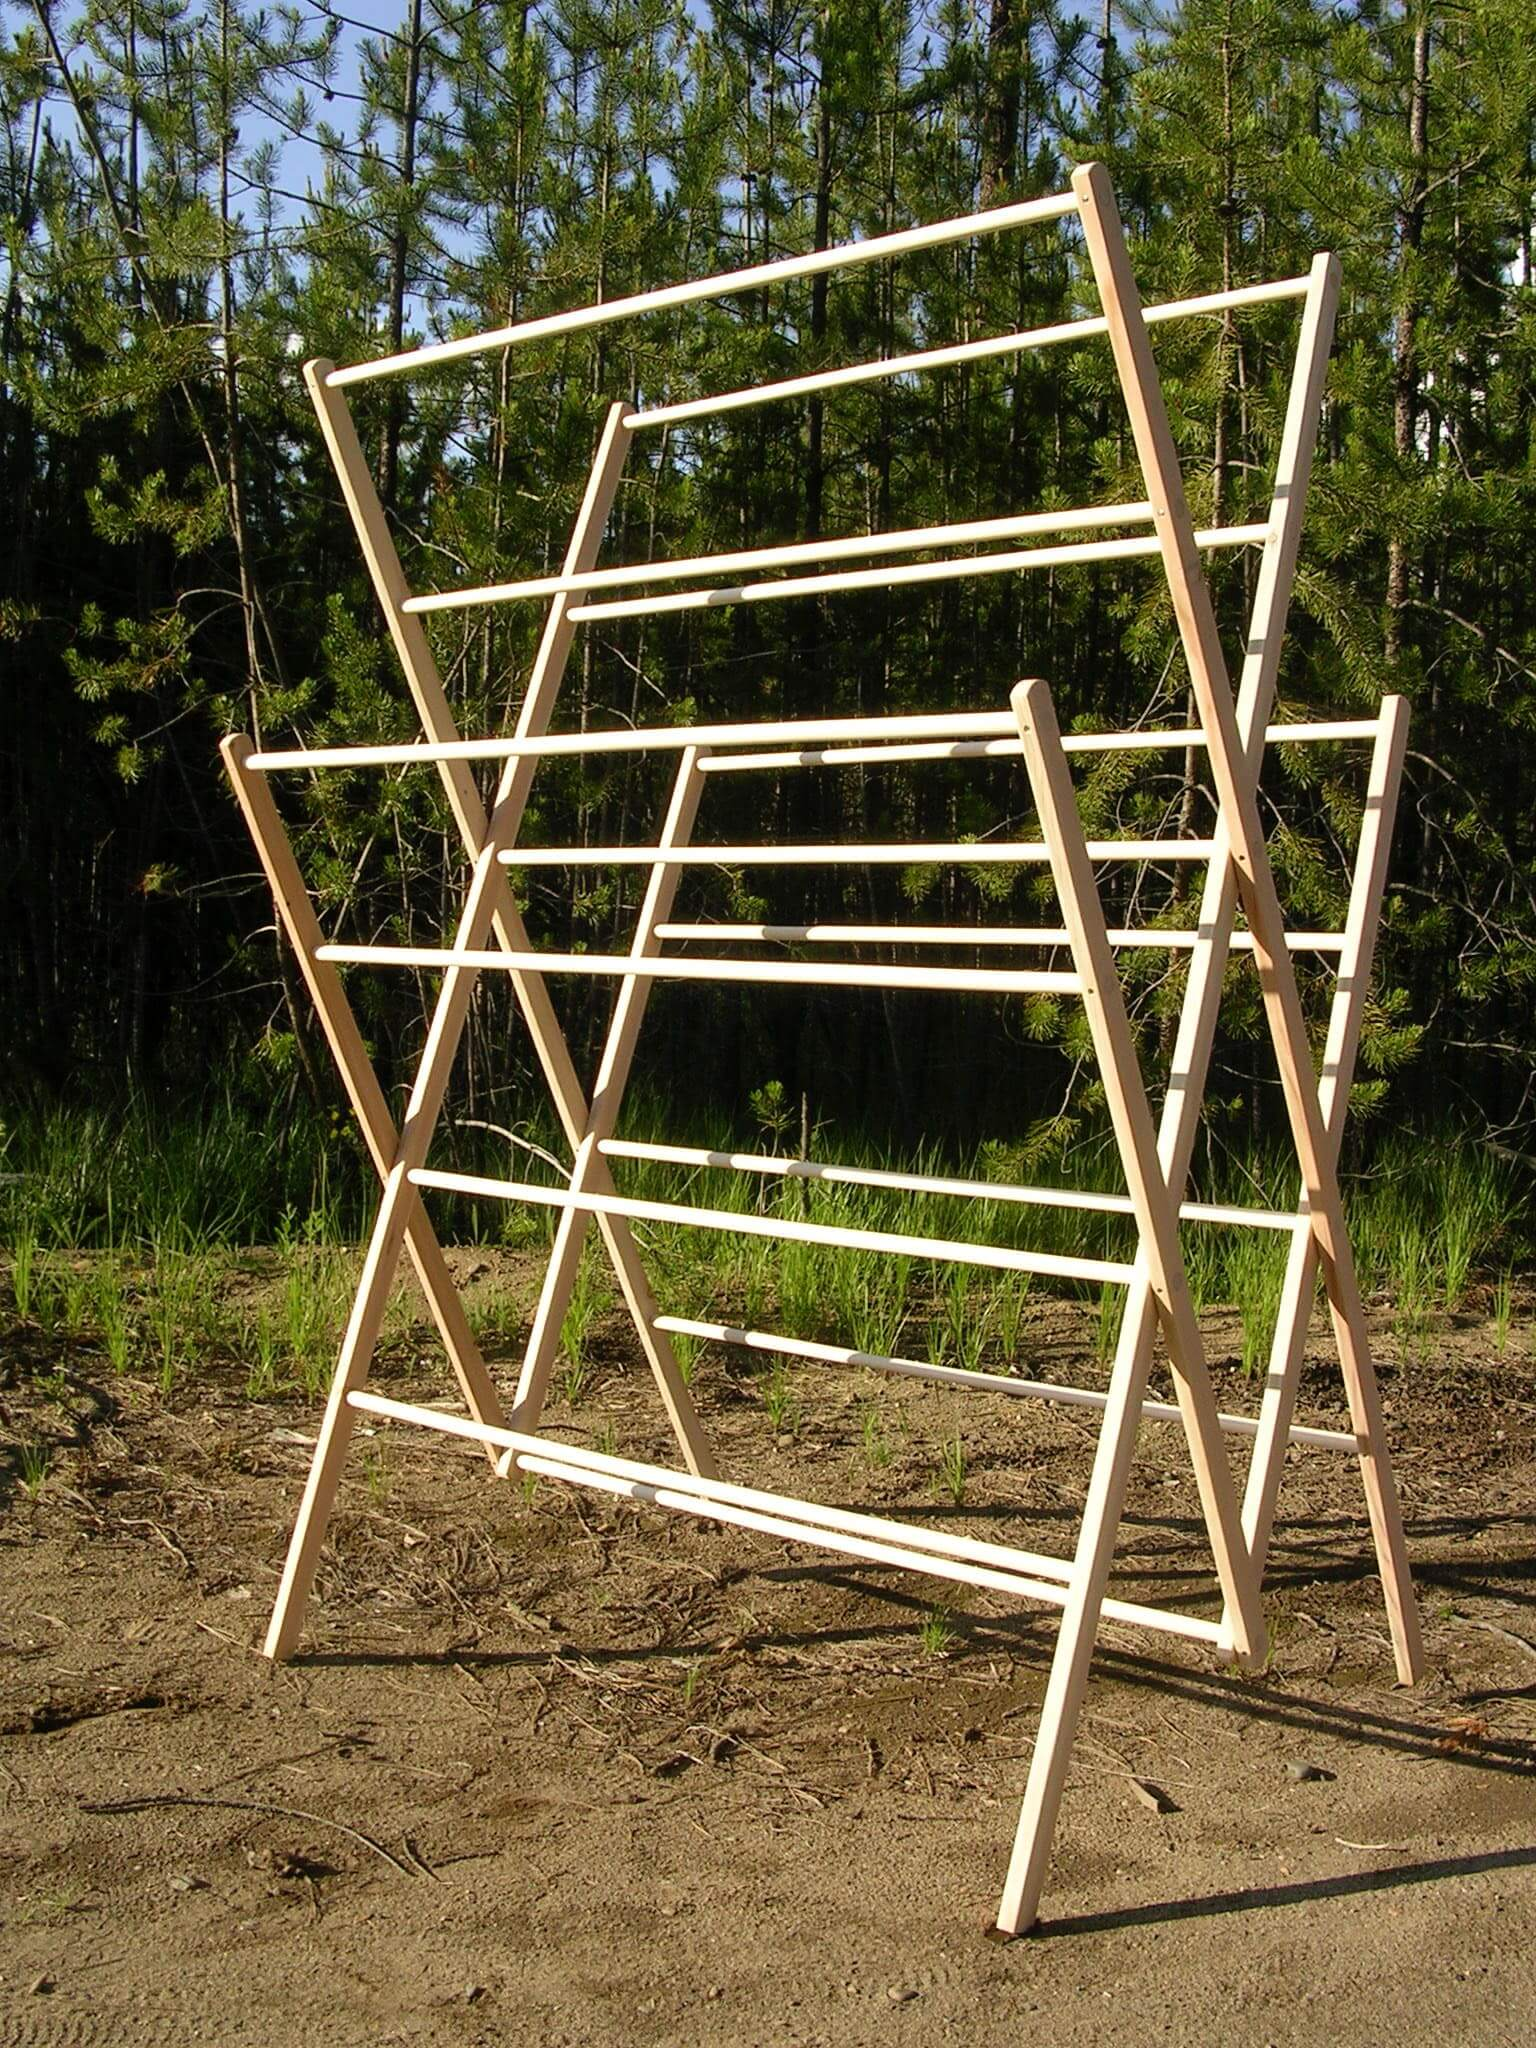 Homestead Drying Racks! Handcrafted in Southern Idaho